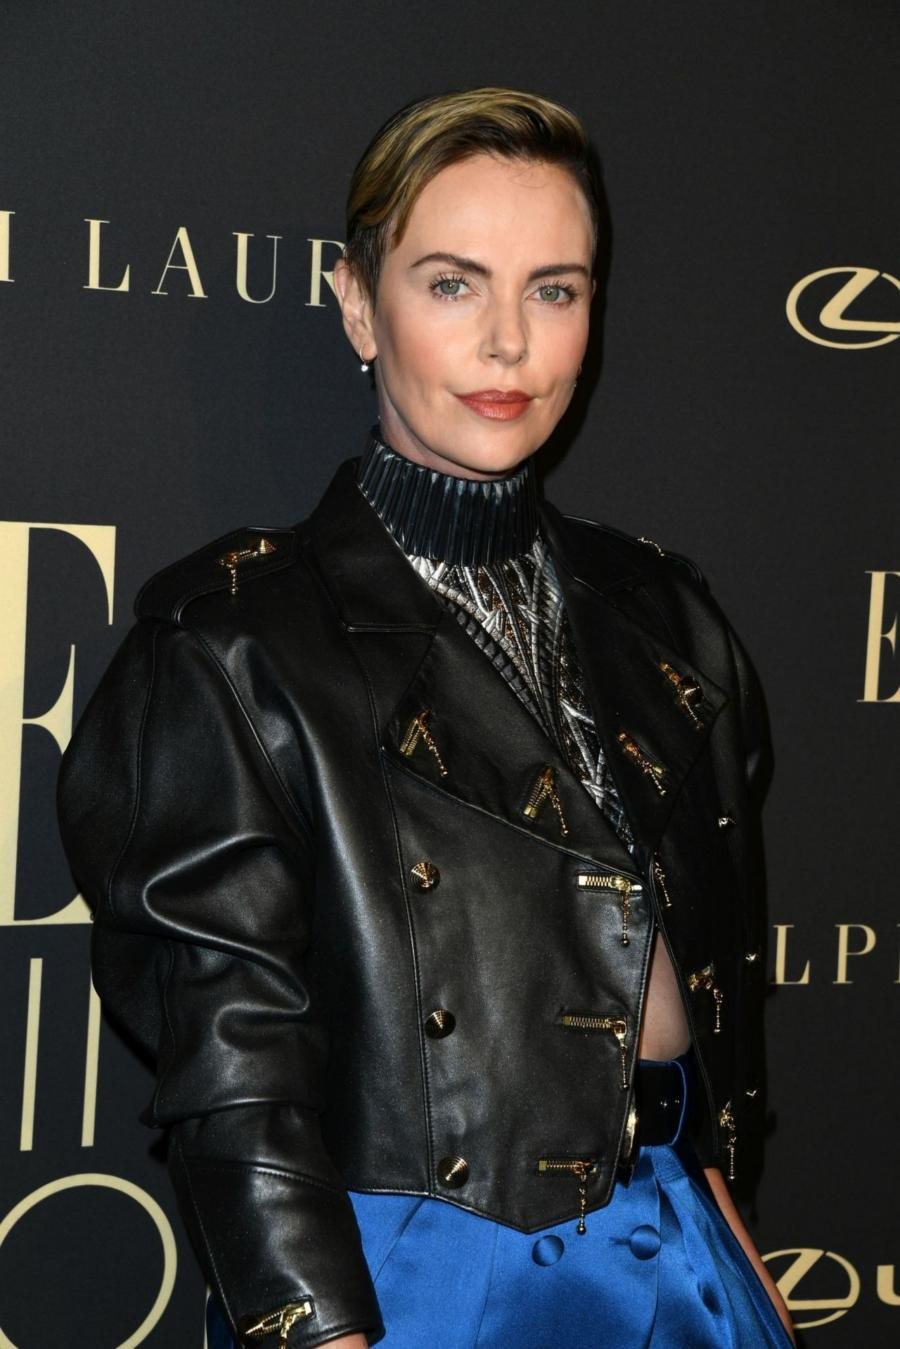 Charlize Theron at ELLE's 2019 Women In Hollywood Event